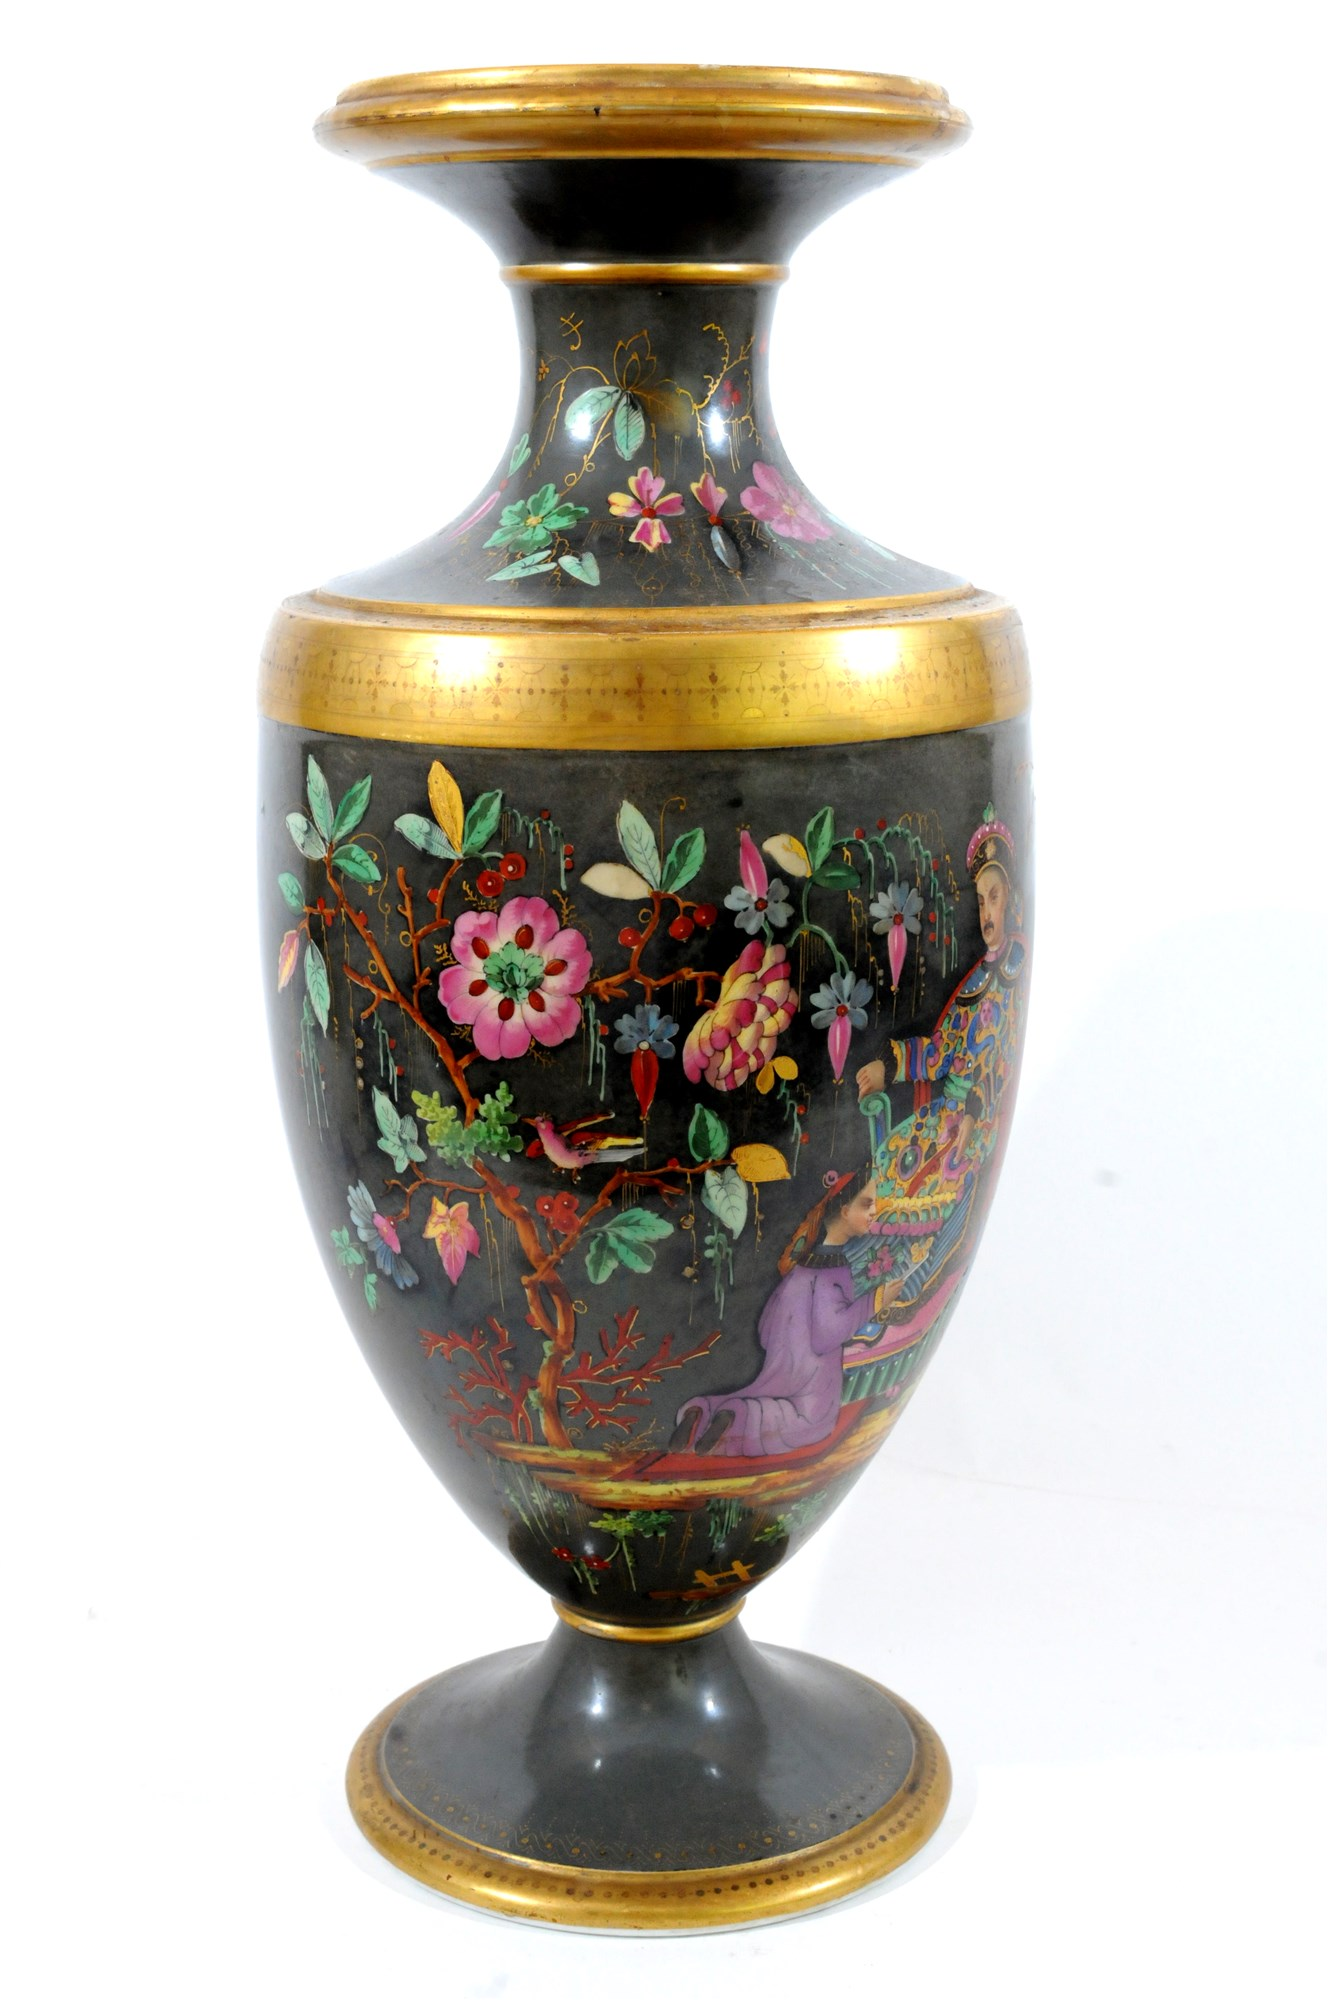 Lot 44 - A French porcelain chinosierie vase